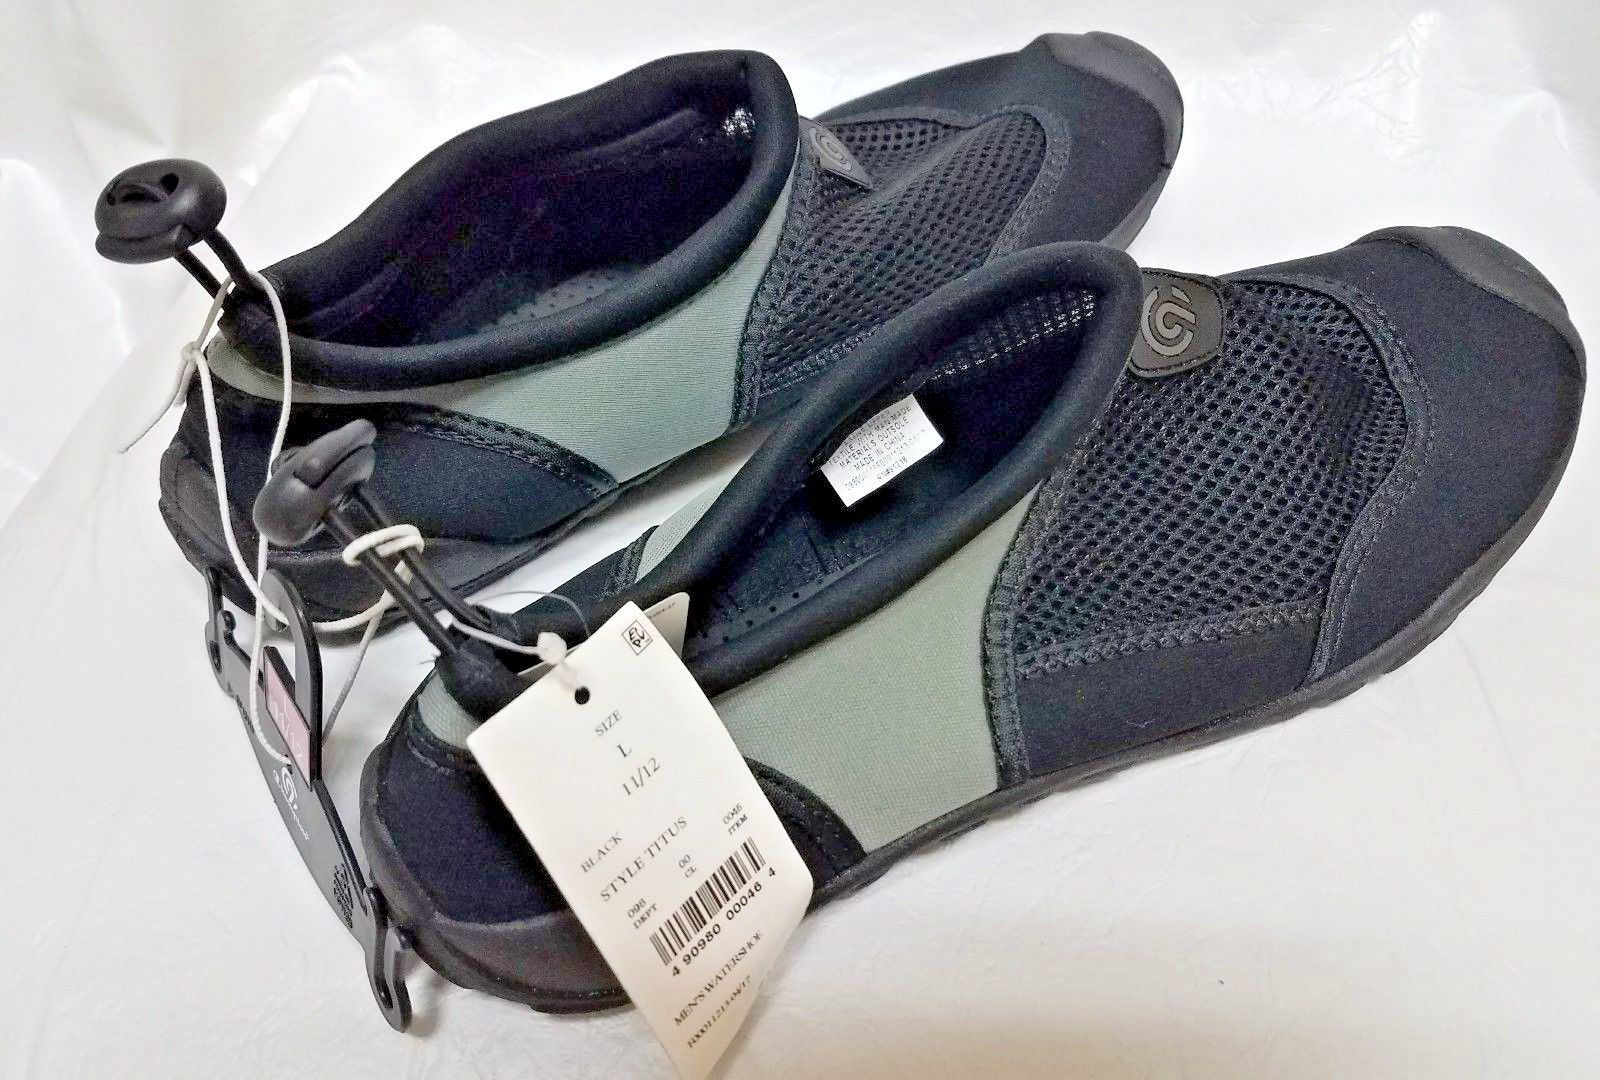 6159fd28c4f CHAMPION Men s C9 Titus Water Shoe Black Gray NWT NEW Size 11 12 in ...